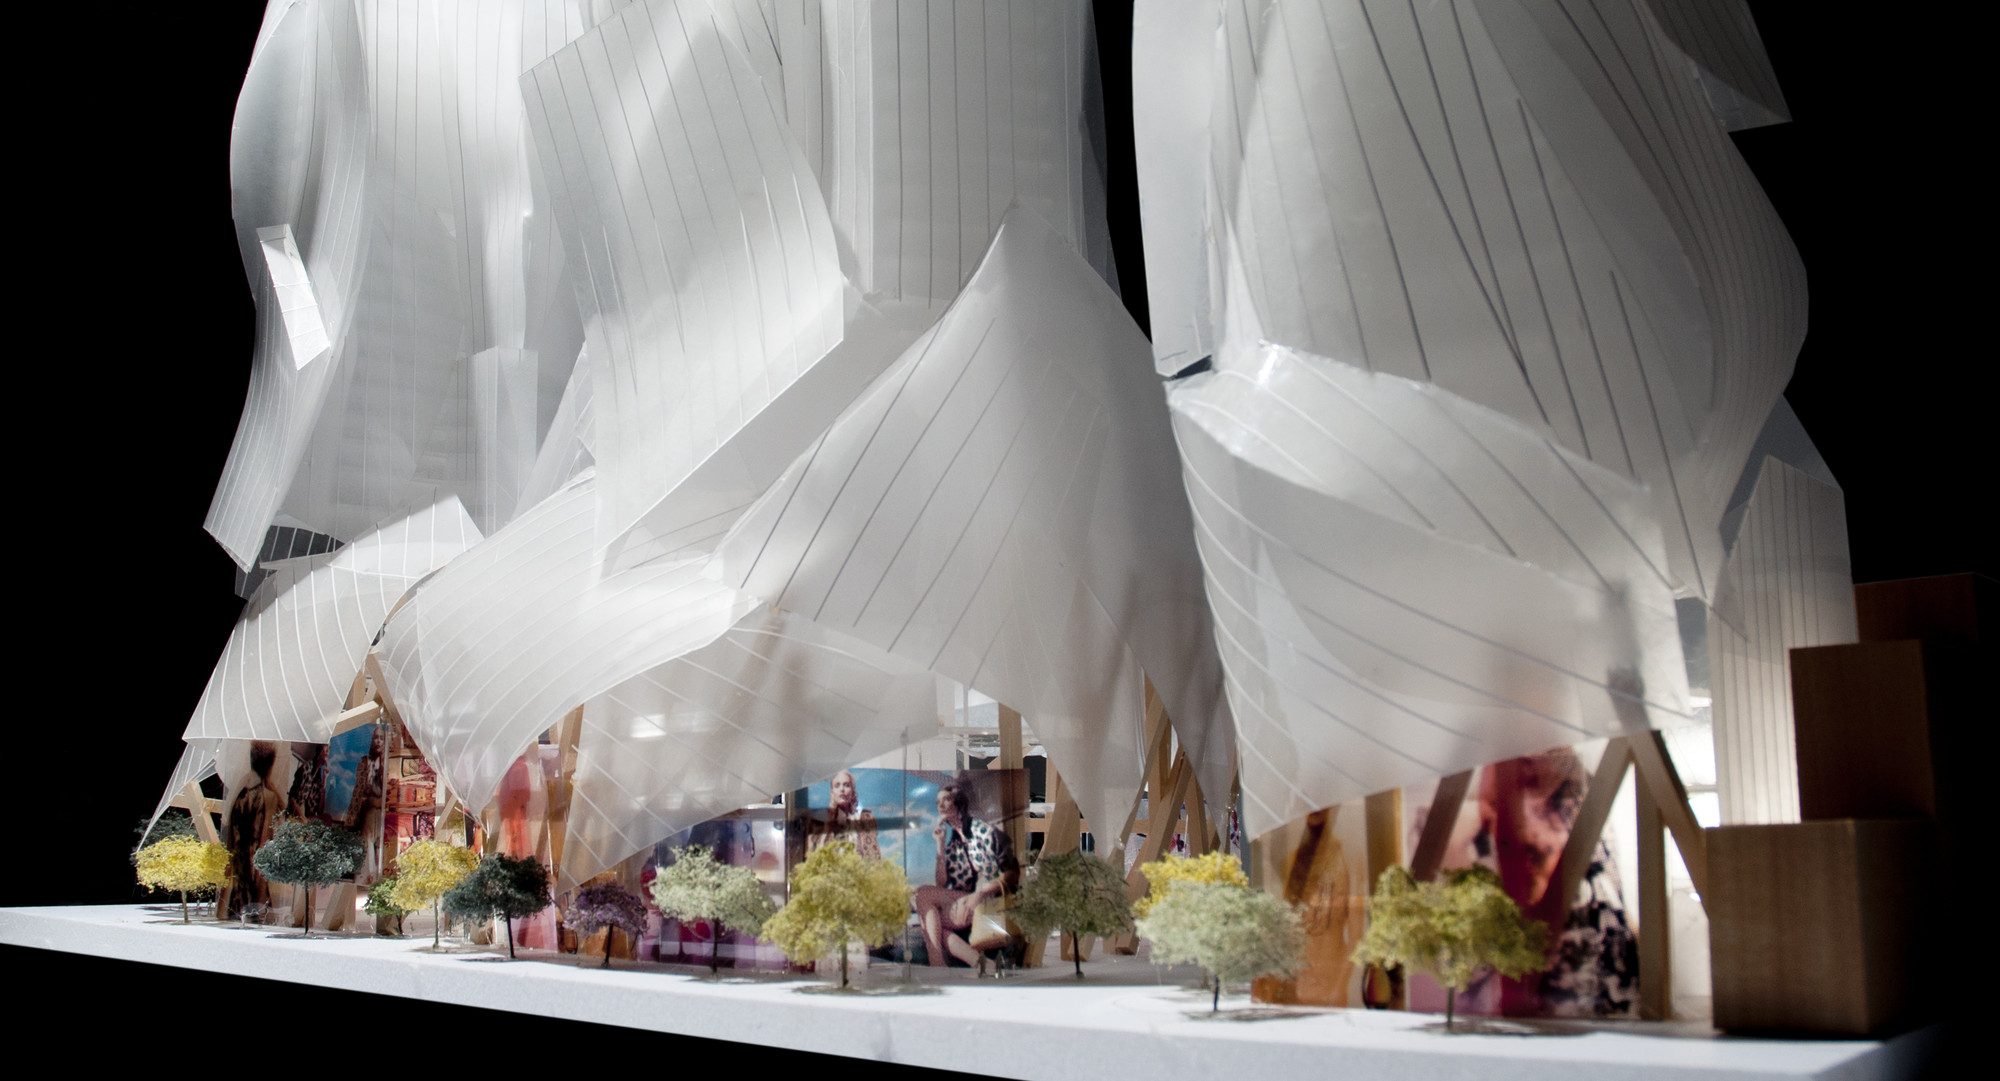 Courtesy of Gehry Partners LLP